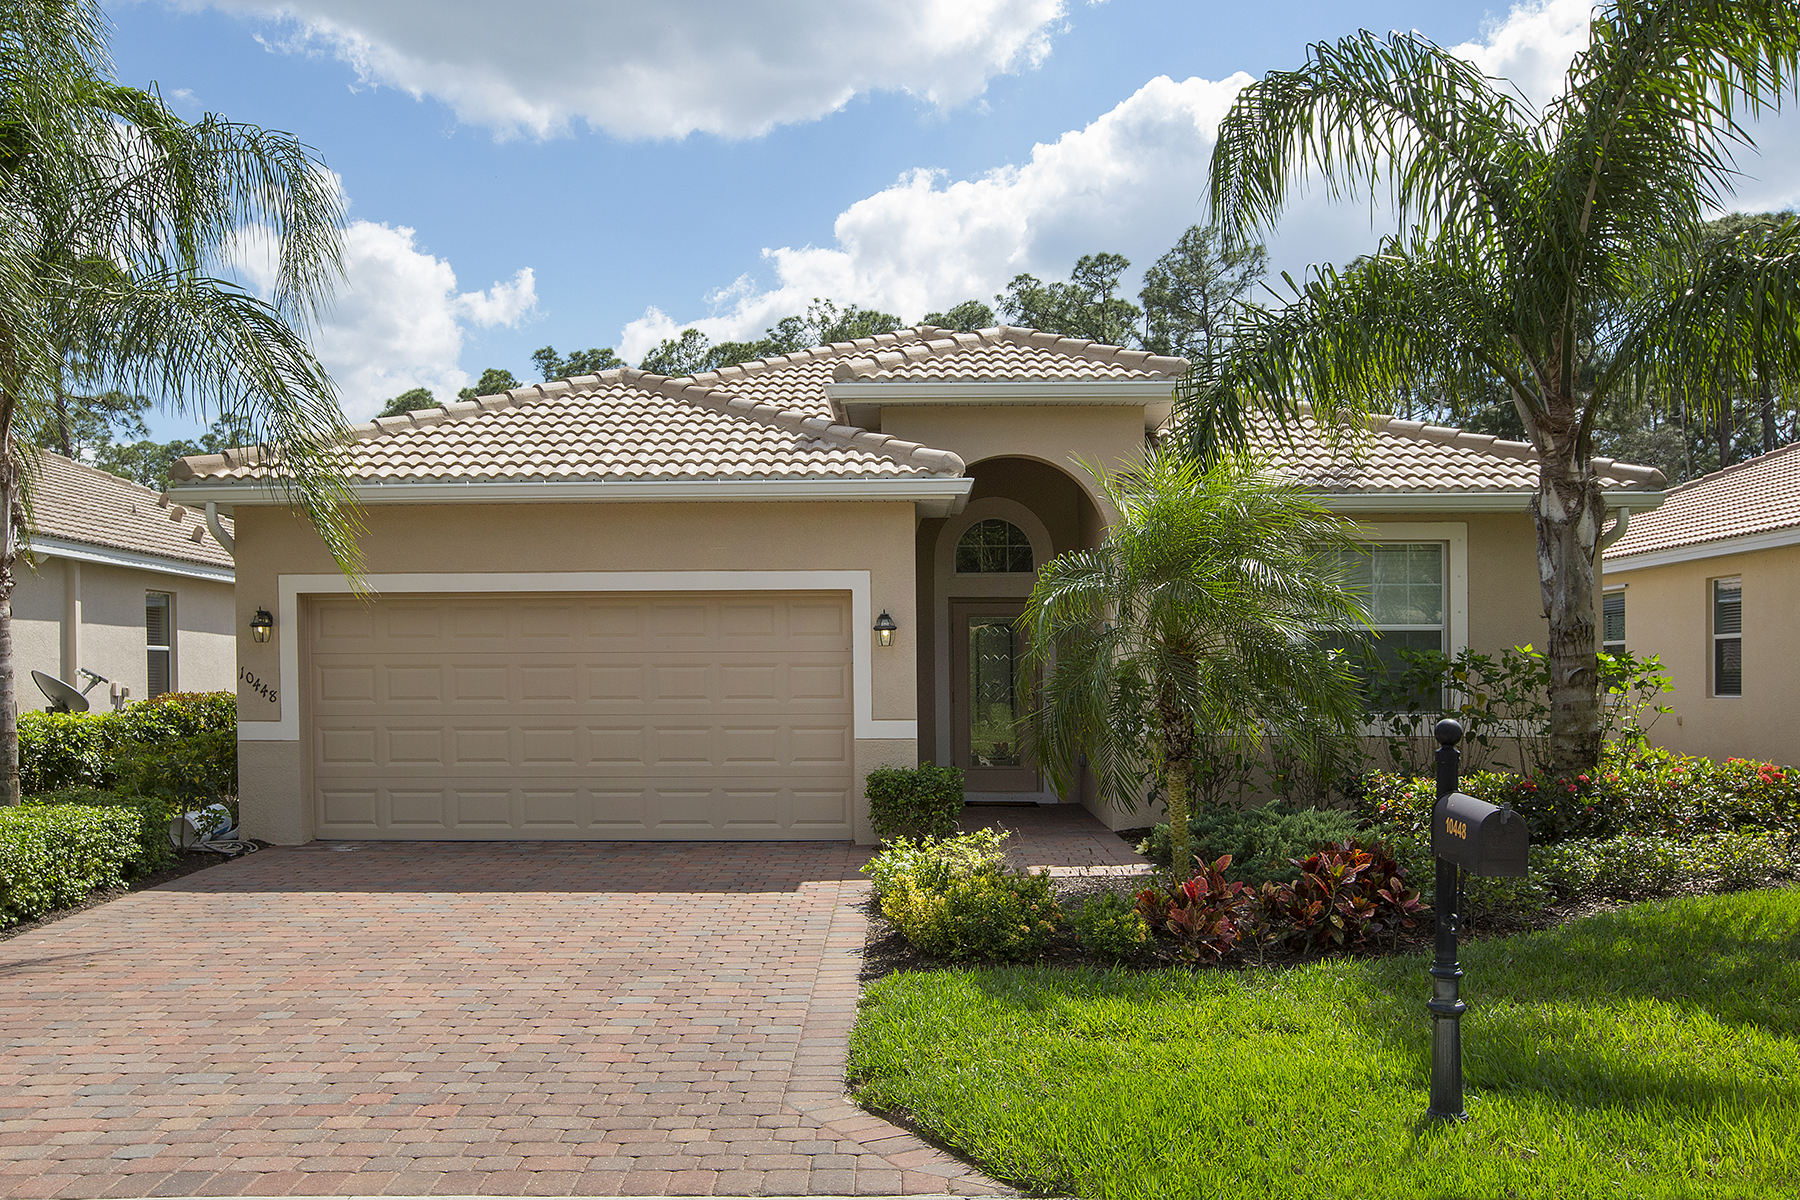 Single Family Home for Sale at HAWTHORNE - EMORY OAKS 10448 Yorkstone Dr, Bonita Springs, Florida 34135 United States